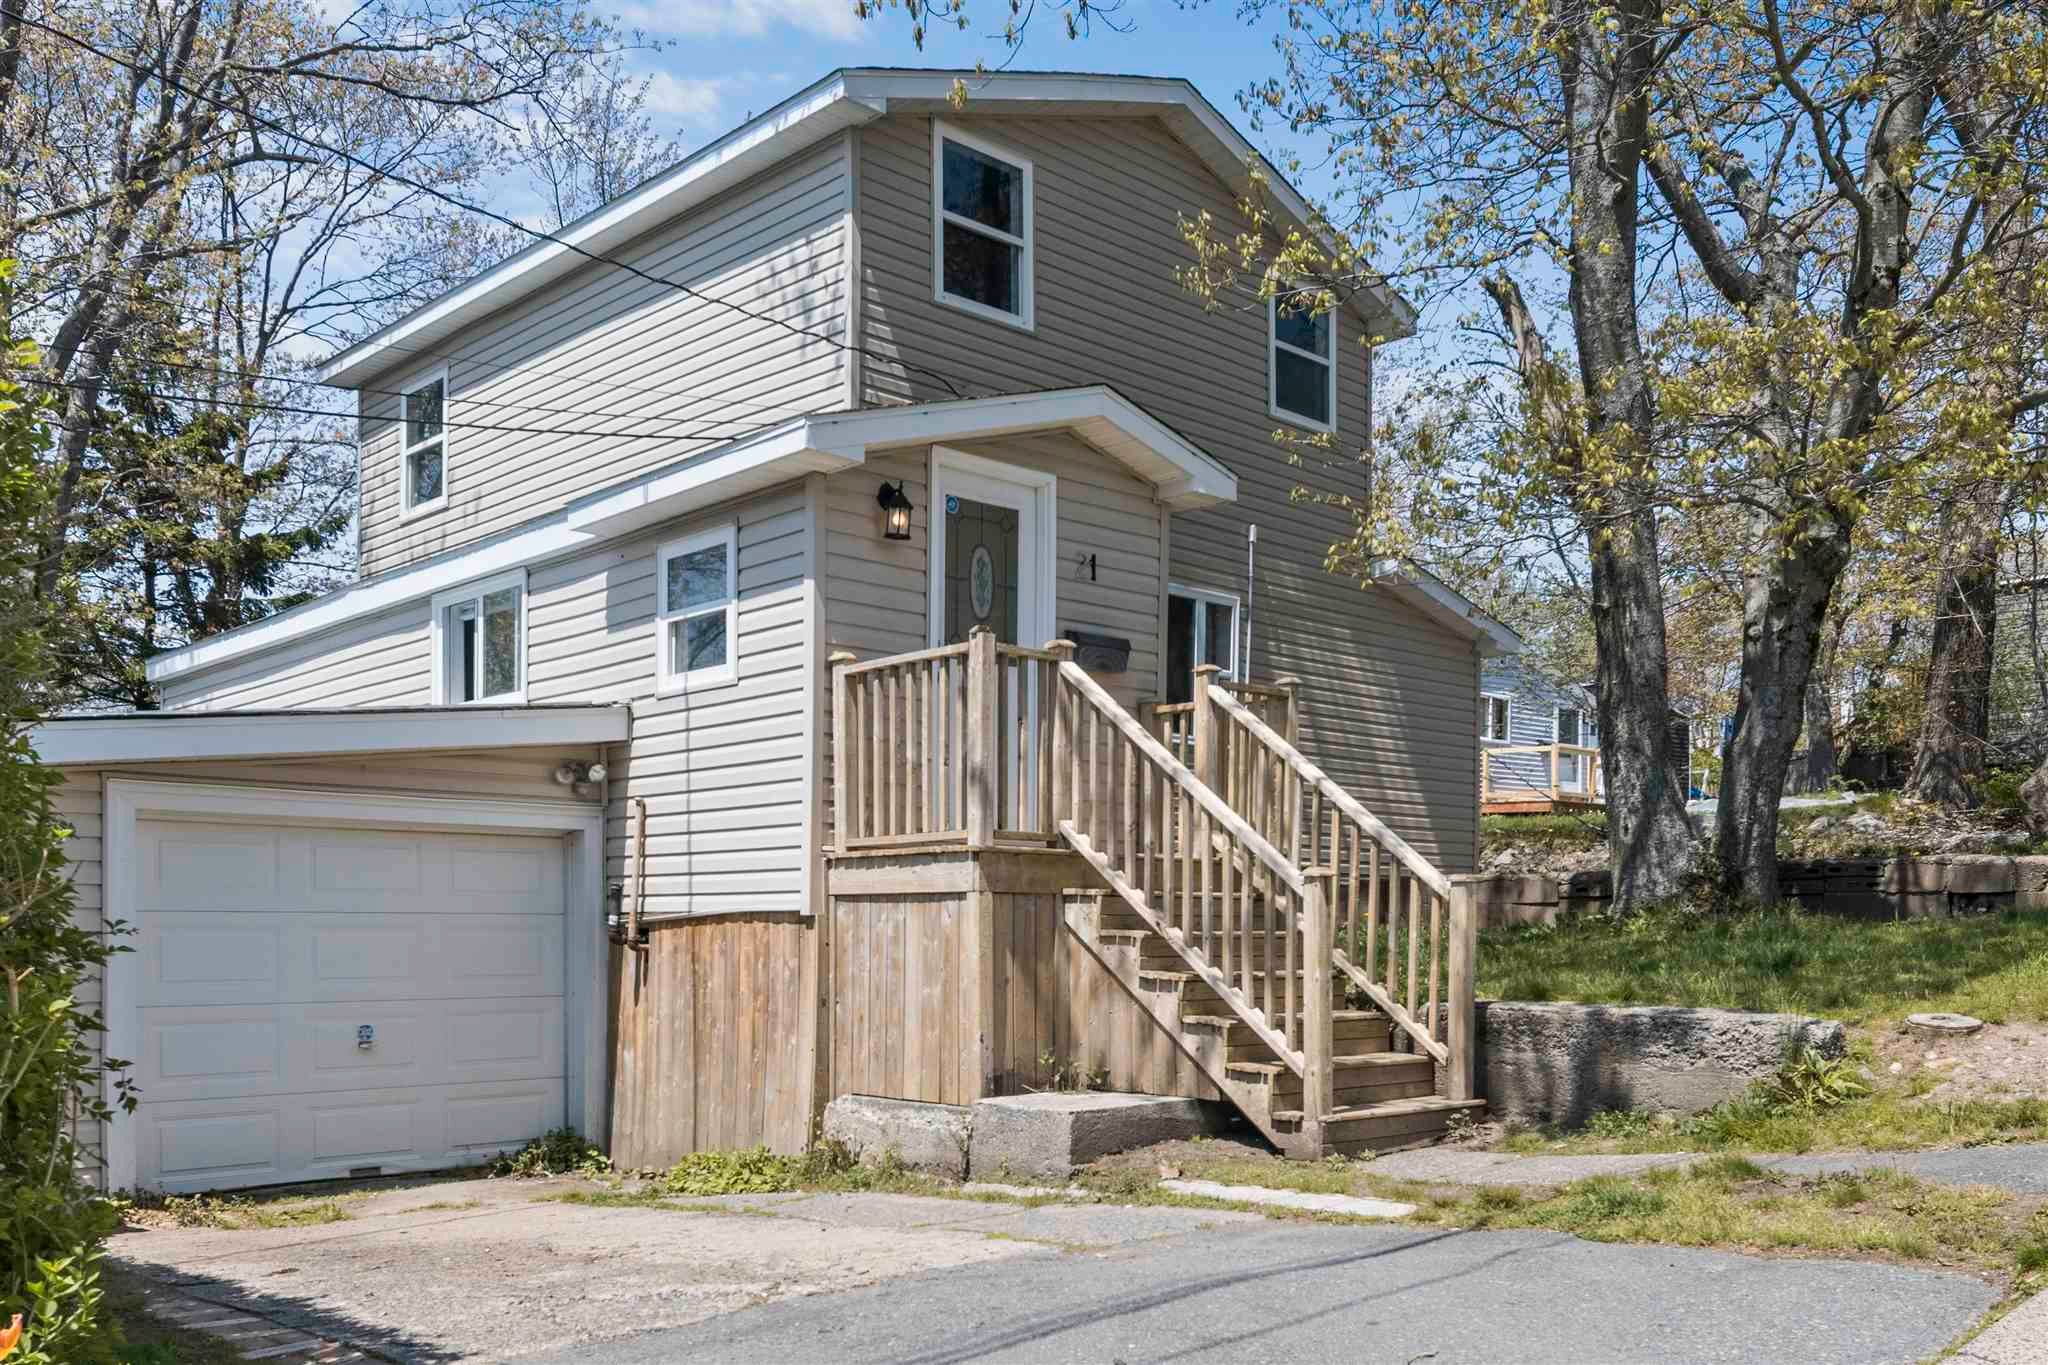 Main Photo: 21 Springhill Road in Dartmouth: 10-Dartmouth Downtown To Burnside Residential for sale (Halifax-Dartmouth)  : MLS®# 202113729